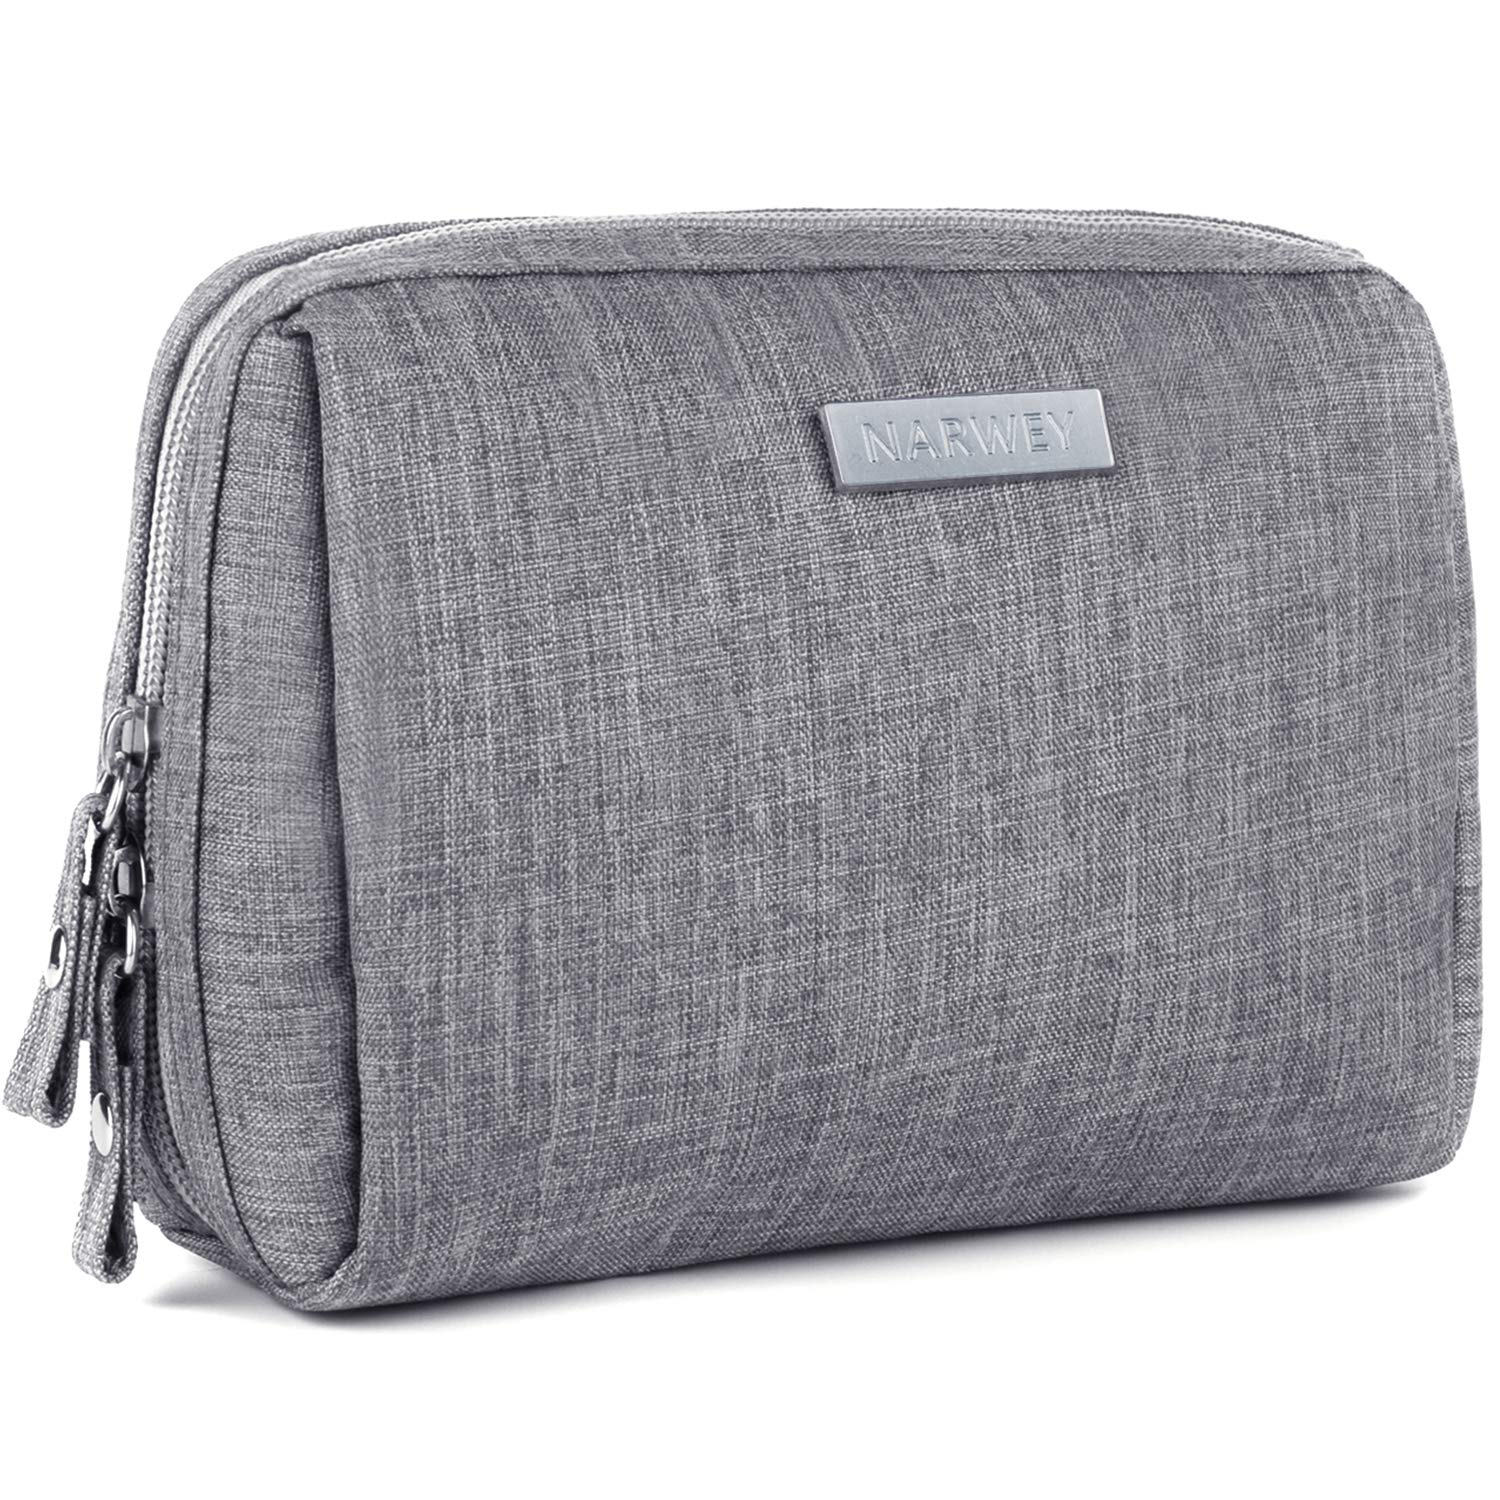 Small Makeup Bag for Purse Travel Makeup Pouch Mini Cosmetic Bag for Women Girls (Rectangle-Gray)